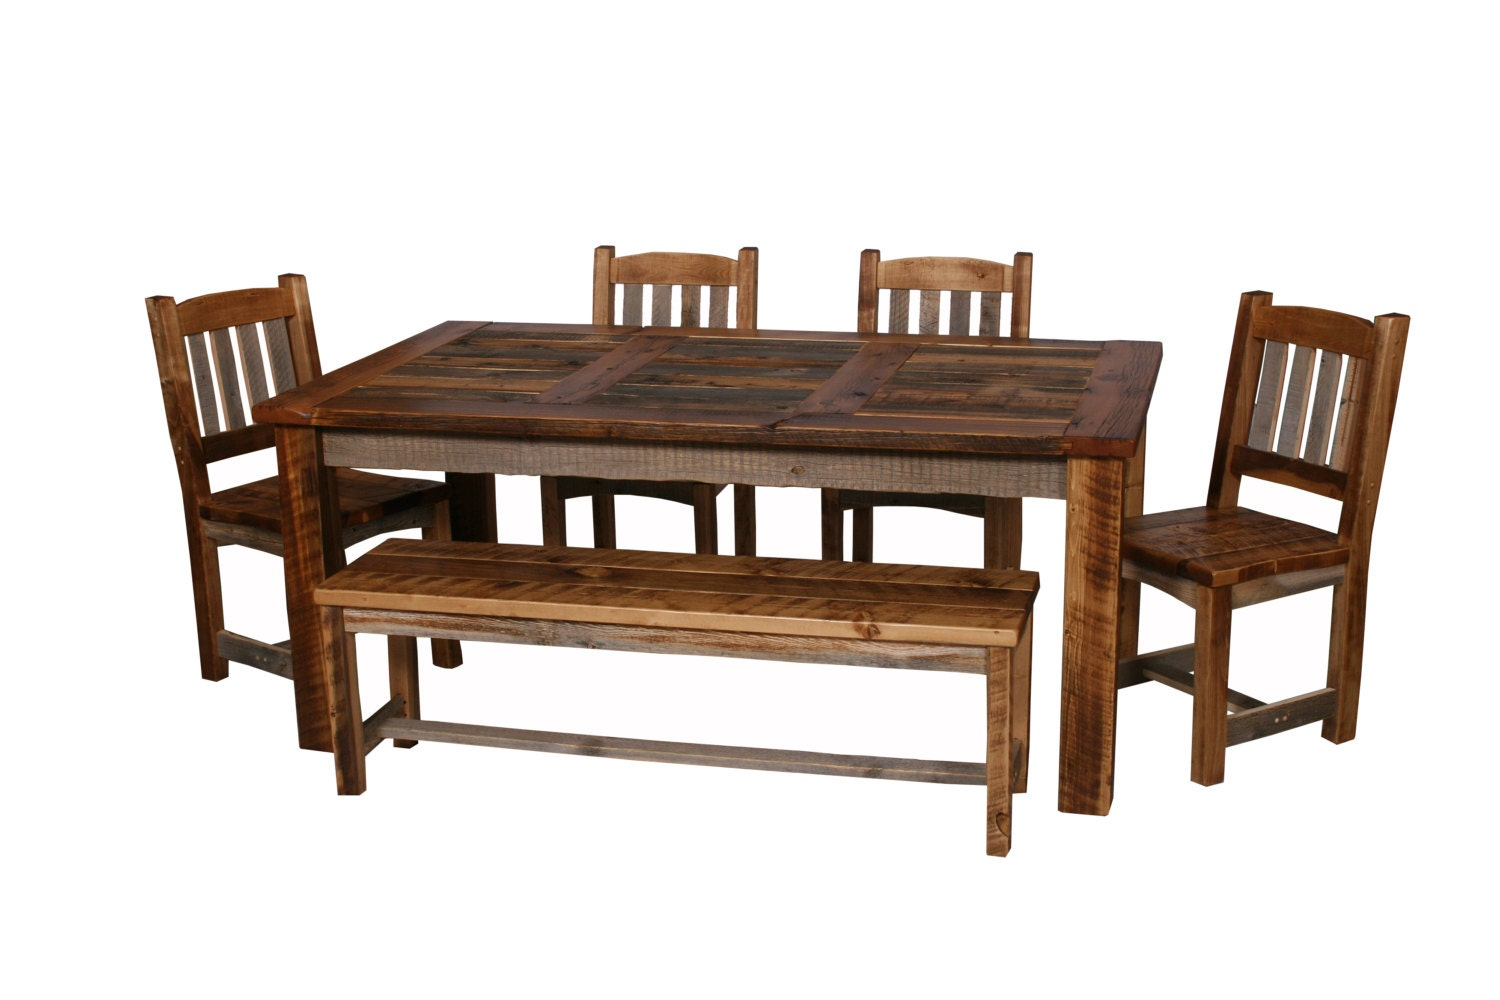 Natural barn wood dining table set dining room furniture for Wood dining table set